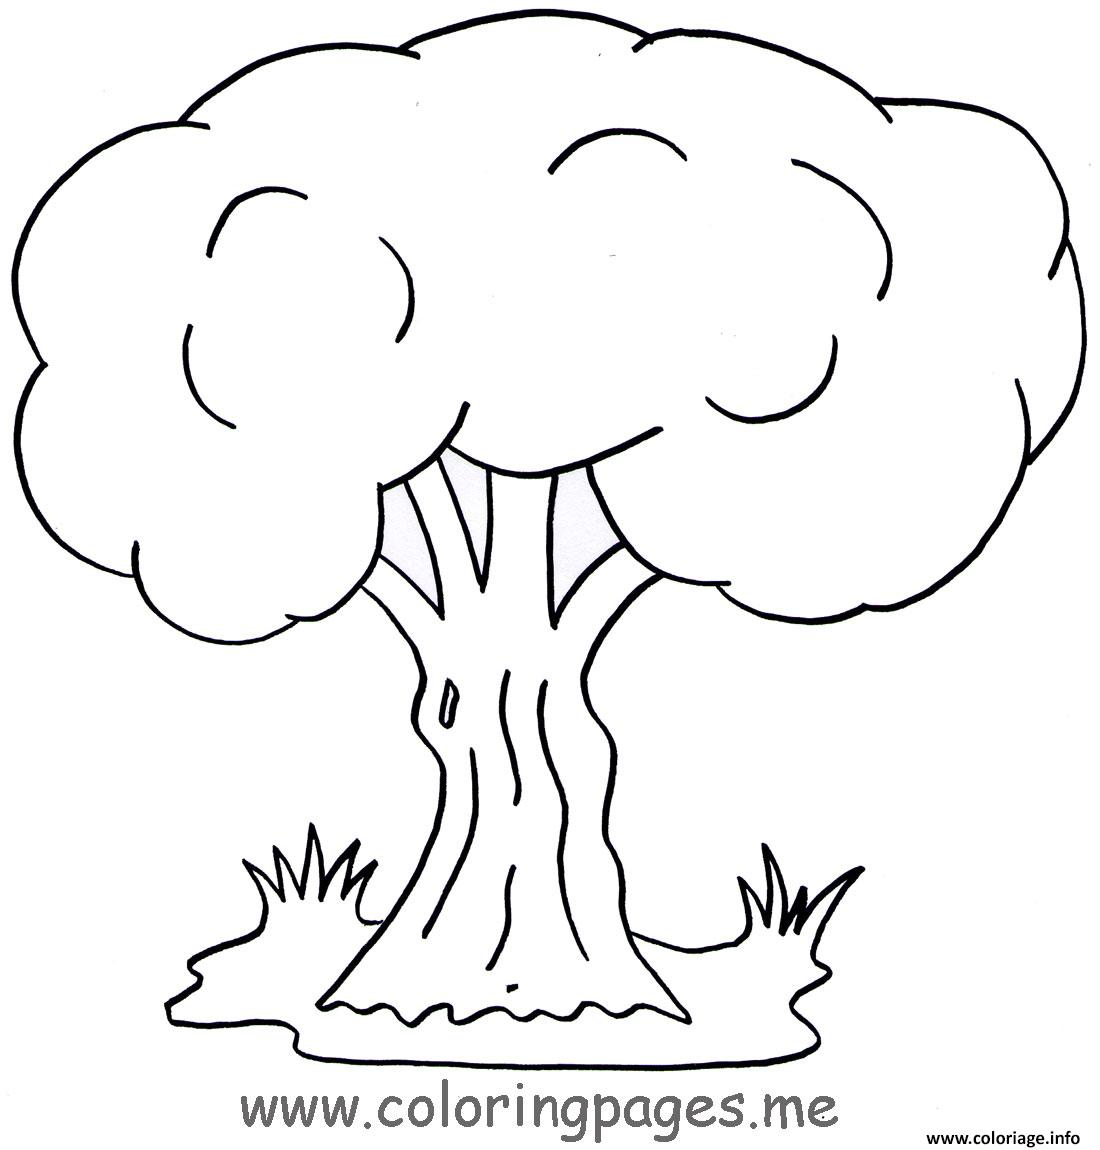 coloriage arbre 125. Black Bedroom Furniture Sets. Home Design Ideas